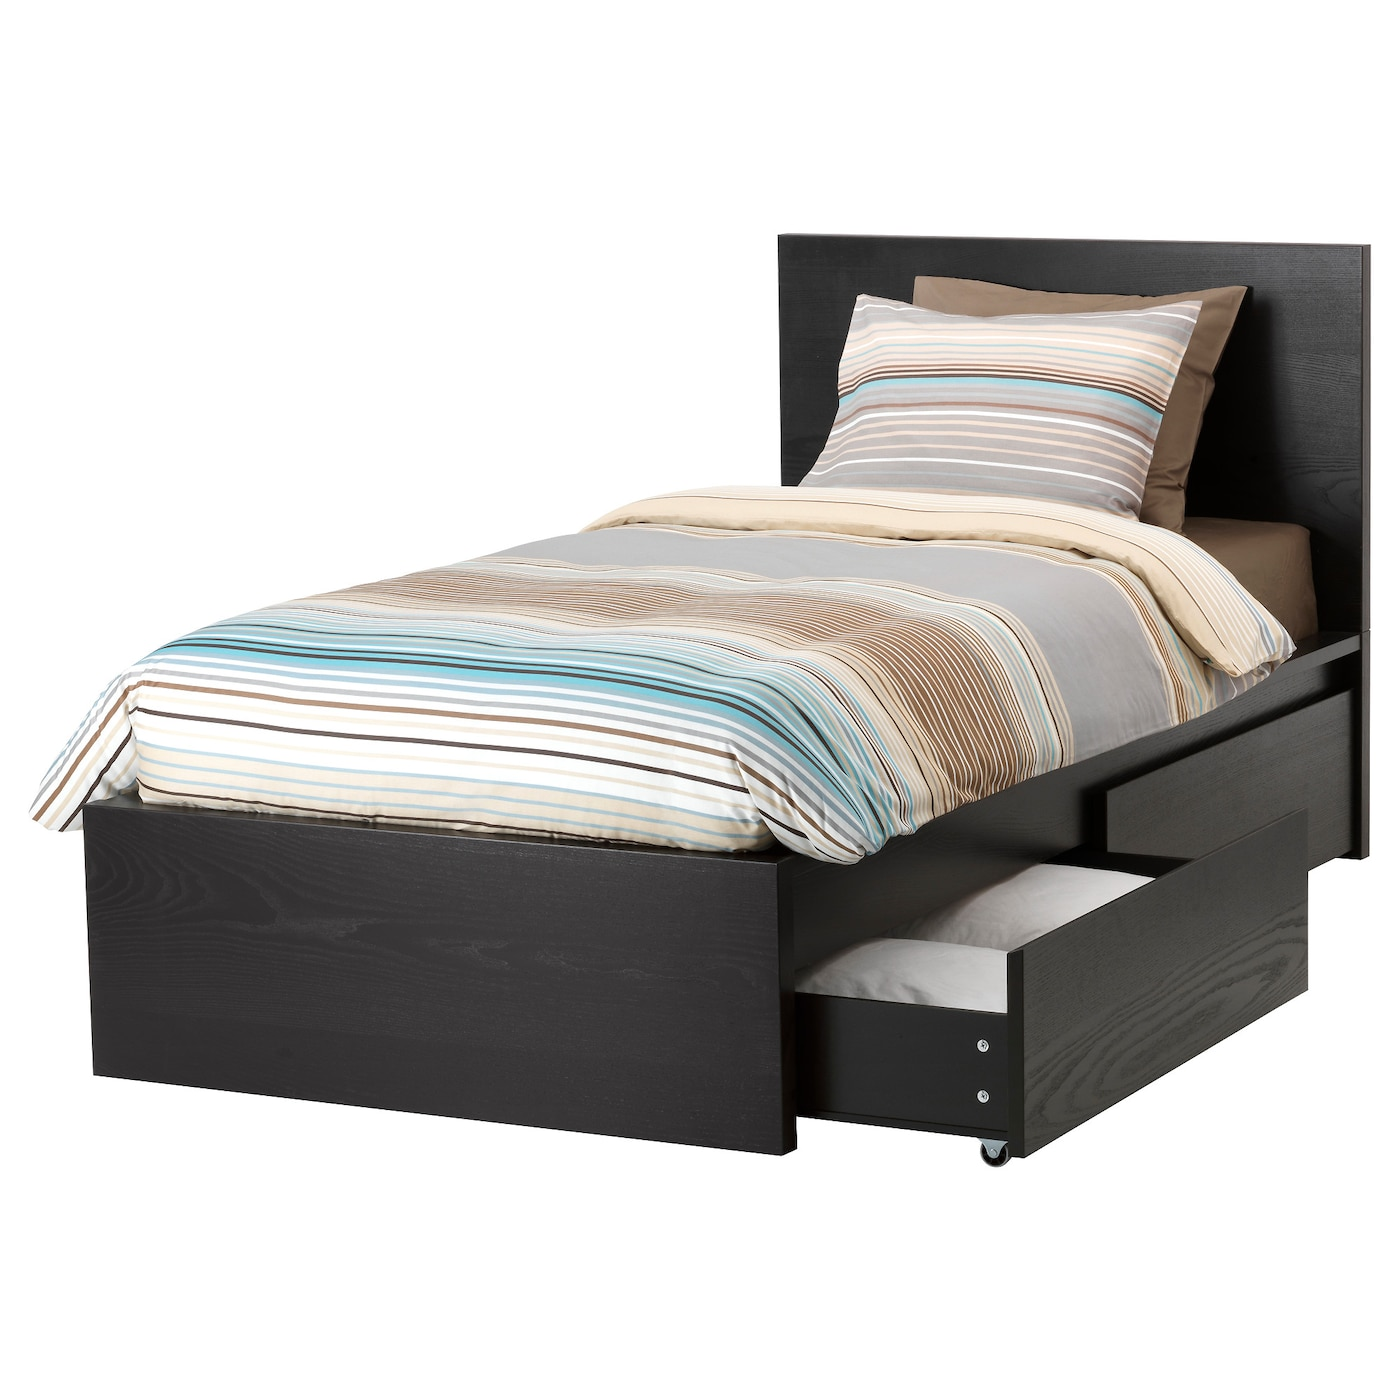 malm cadre de lit haut 2 rangements brun noir 90x200 cm ikea. Black Bedroom Furniture Sets. Home Design Ideas